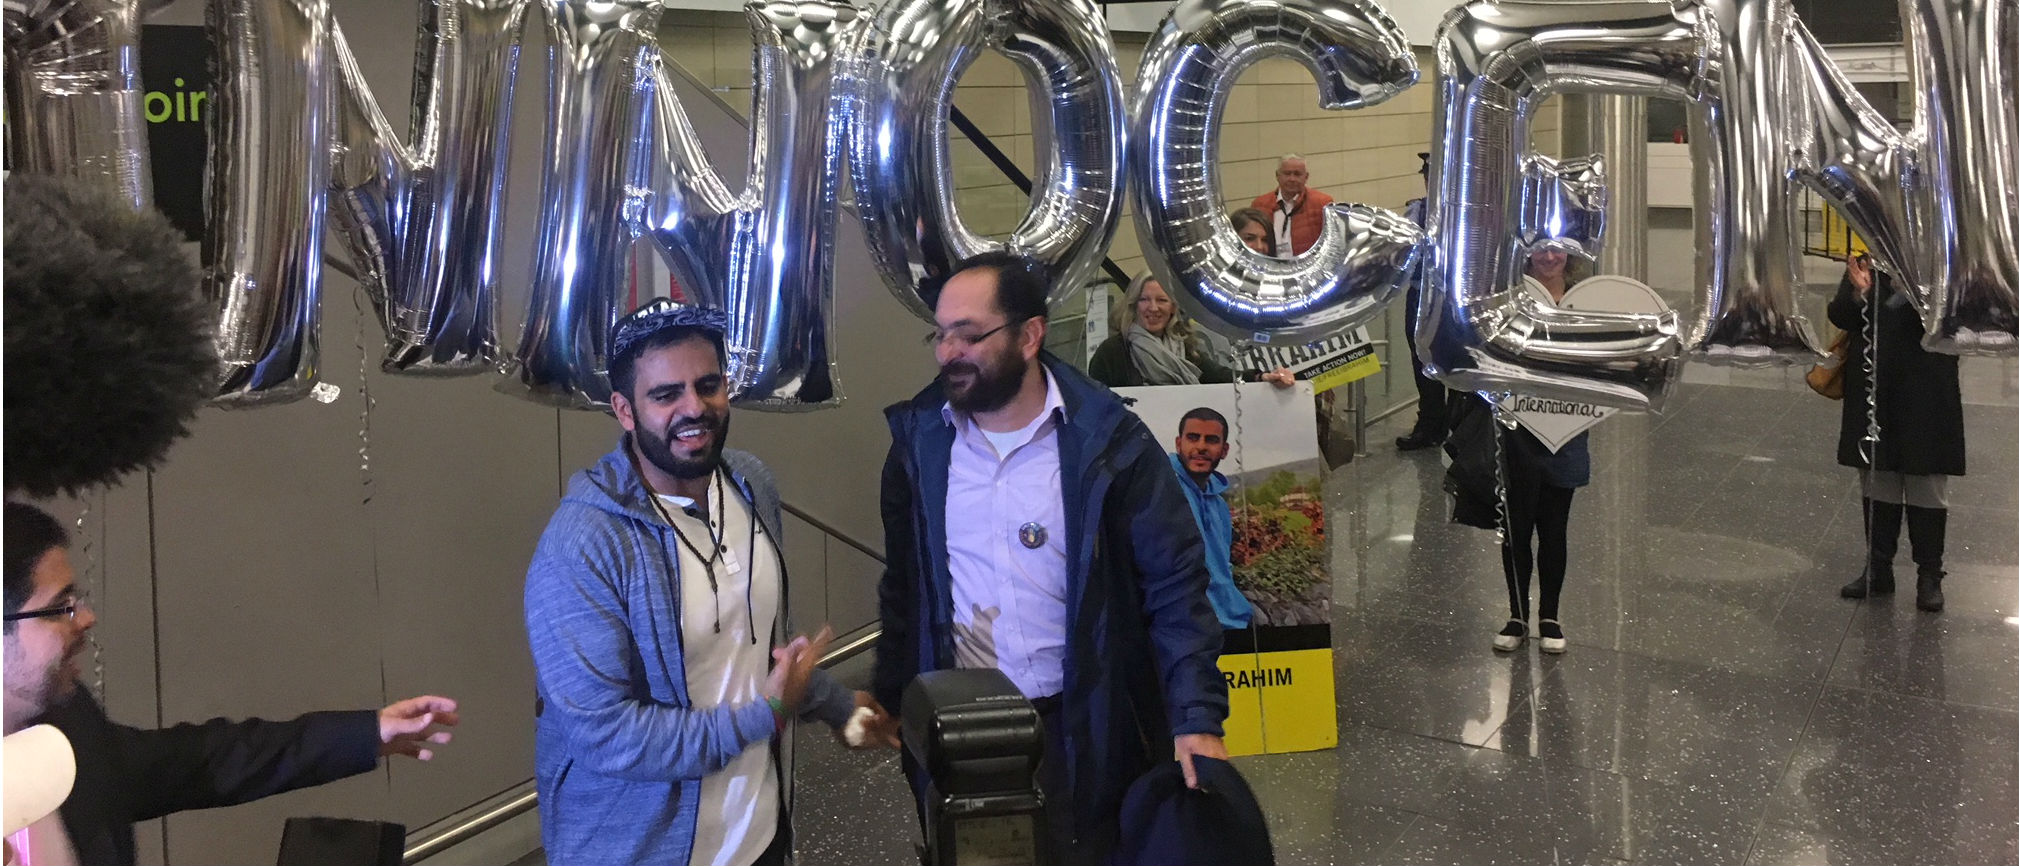 Ibrahim's Returned To Dublin